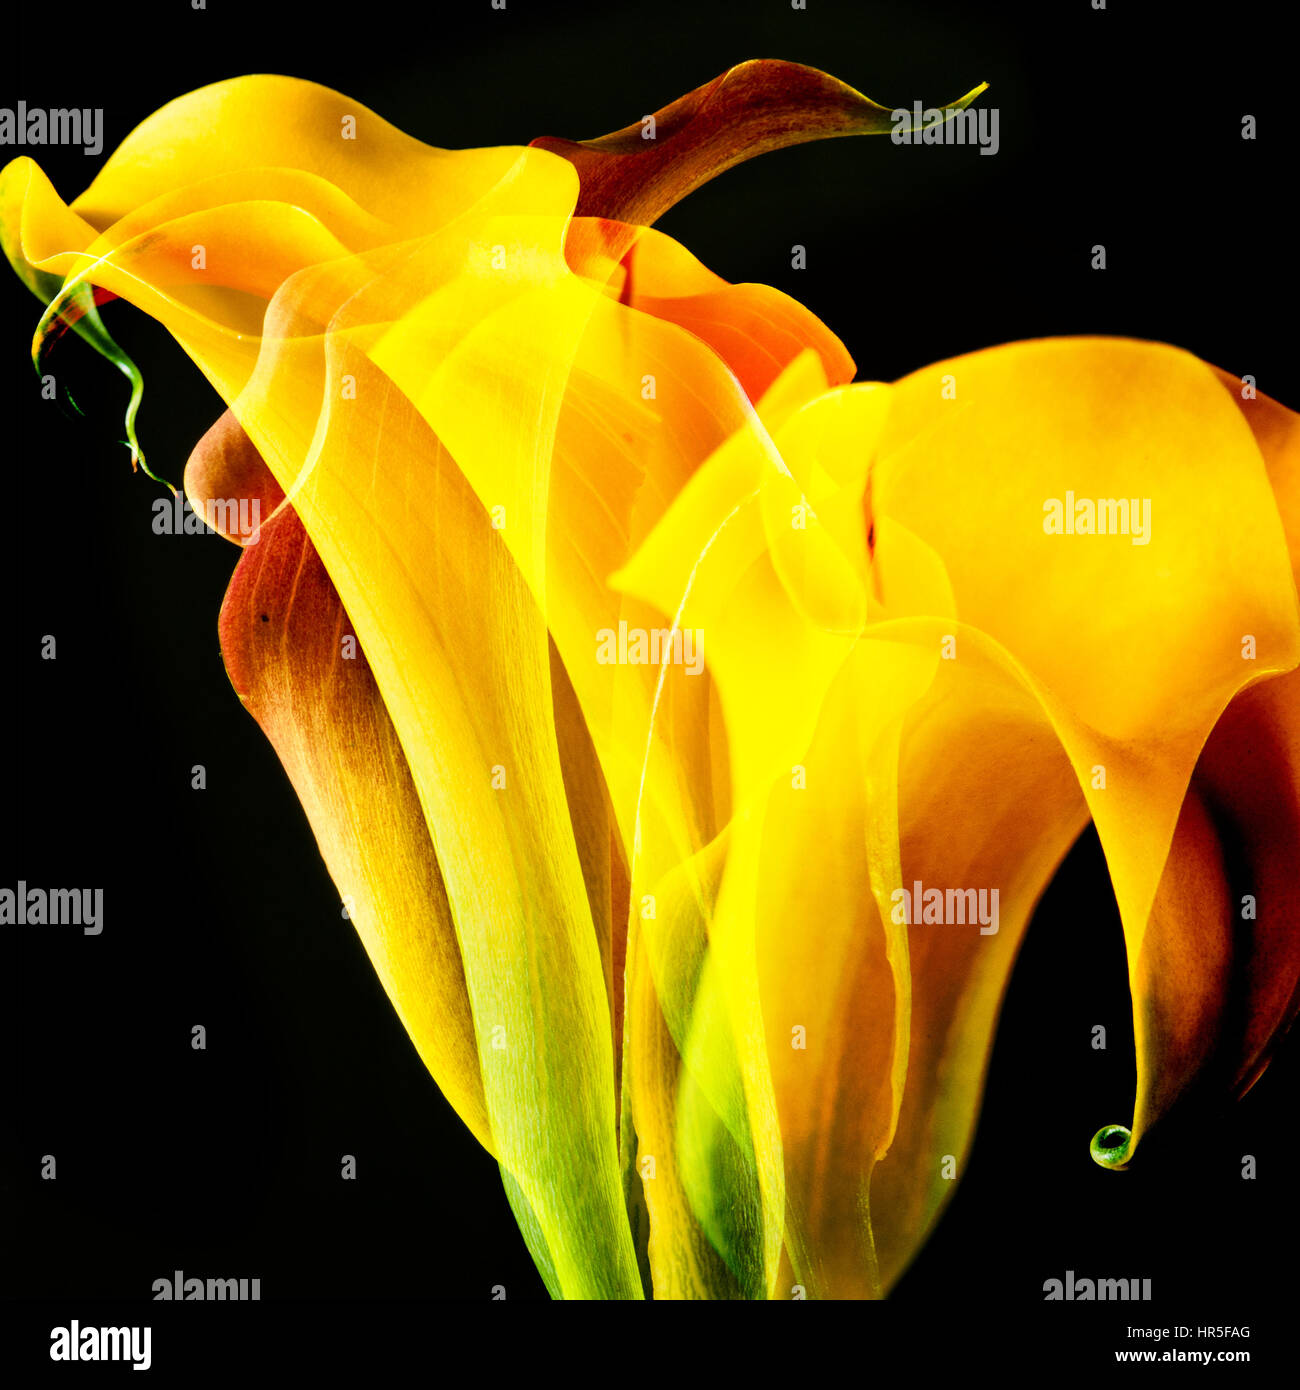 yellow Lily  Calla flower abstract, artistic composite of many flowers - Stock Image